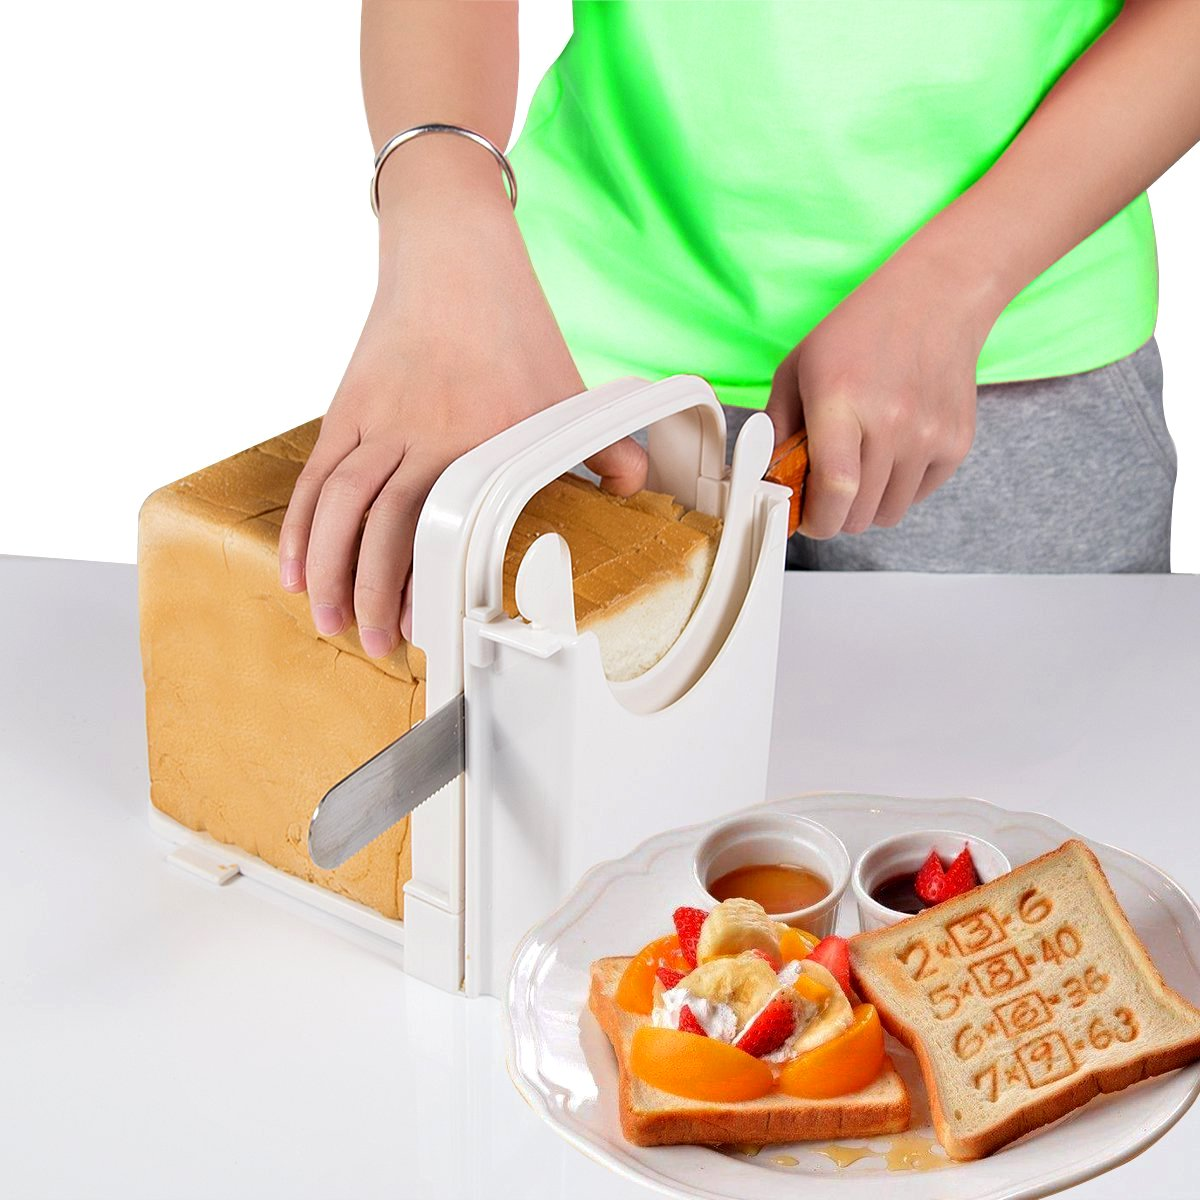 Eon Concepts Bread Slicer Guide For Homemade Bread With Mini Bread Recipe E-Book | Loaf Cutter Machine - Foldable Adjustable & Customizable to 5 Thickness | Bagel / Sandwich / Toast Slicer by Eon Concepts (Image #7)